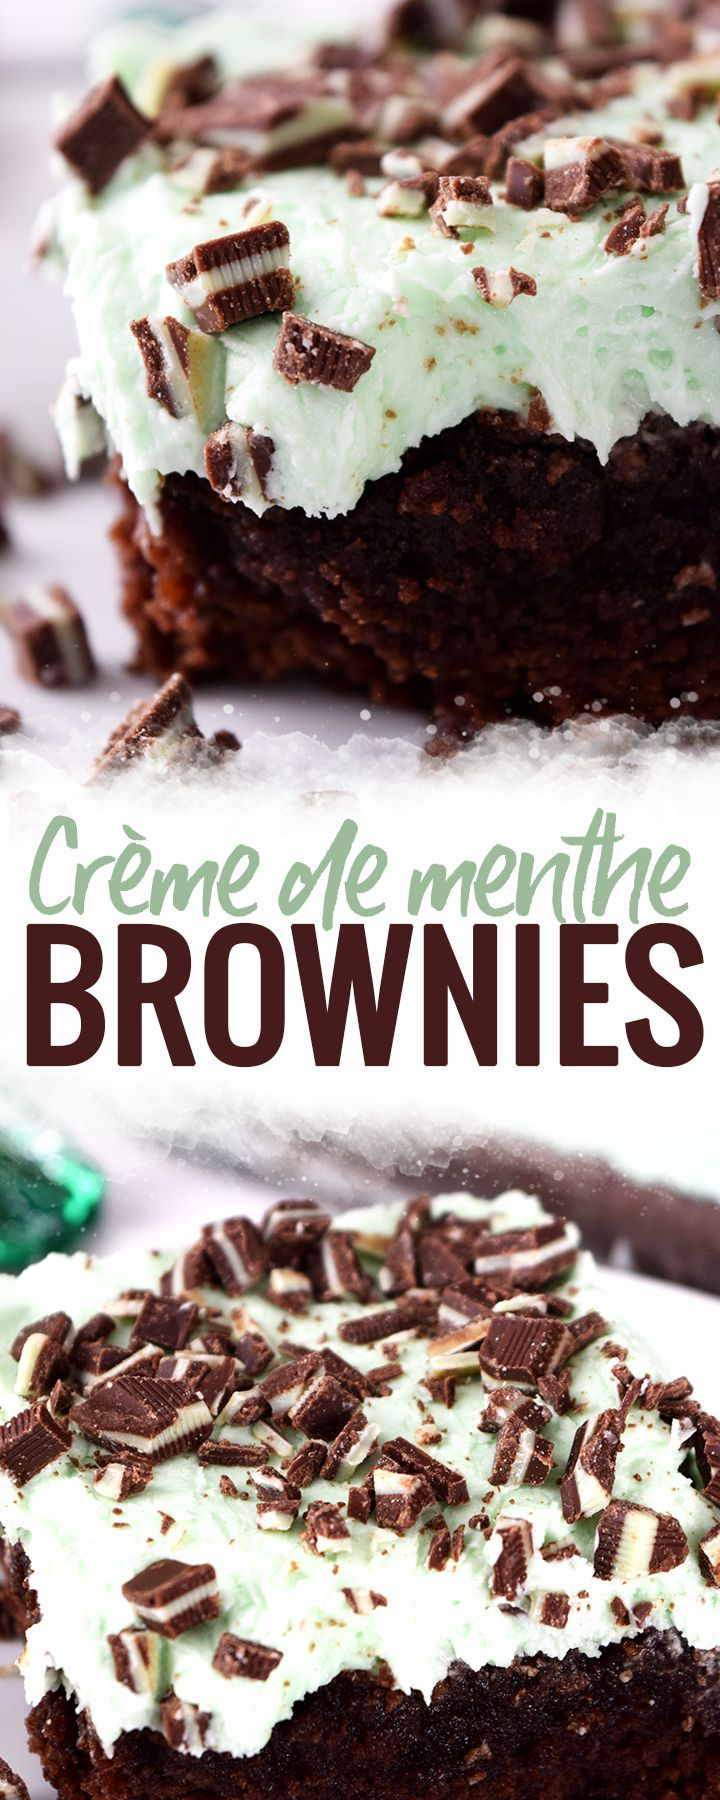 Creme de Menthe Brownies - these Crème de menthe brownies bring together mint buttercream frosting, liqueur and fudge brownies into one delicious treat. Top with Andes mints and you have a winner.